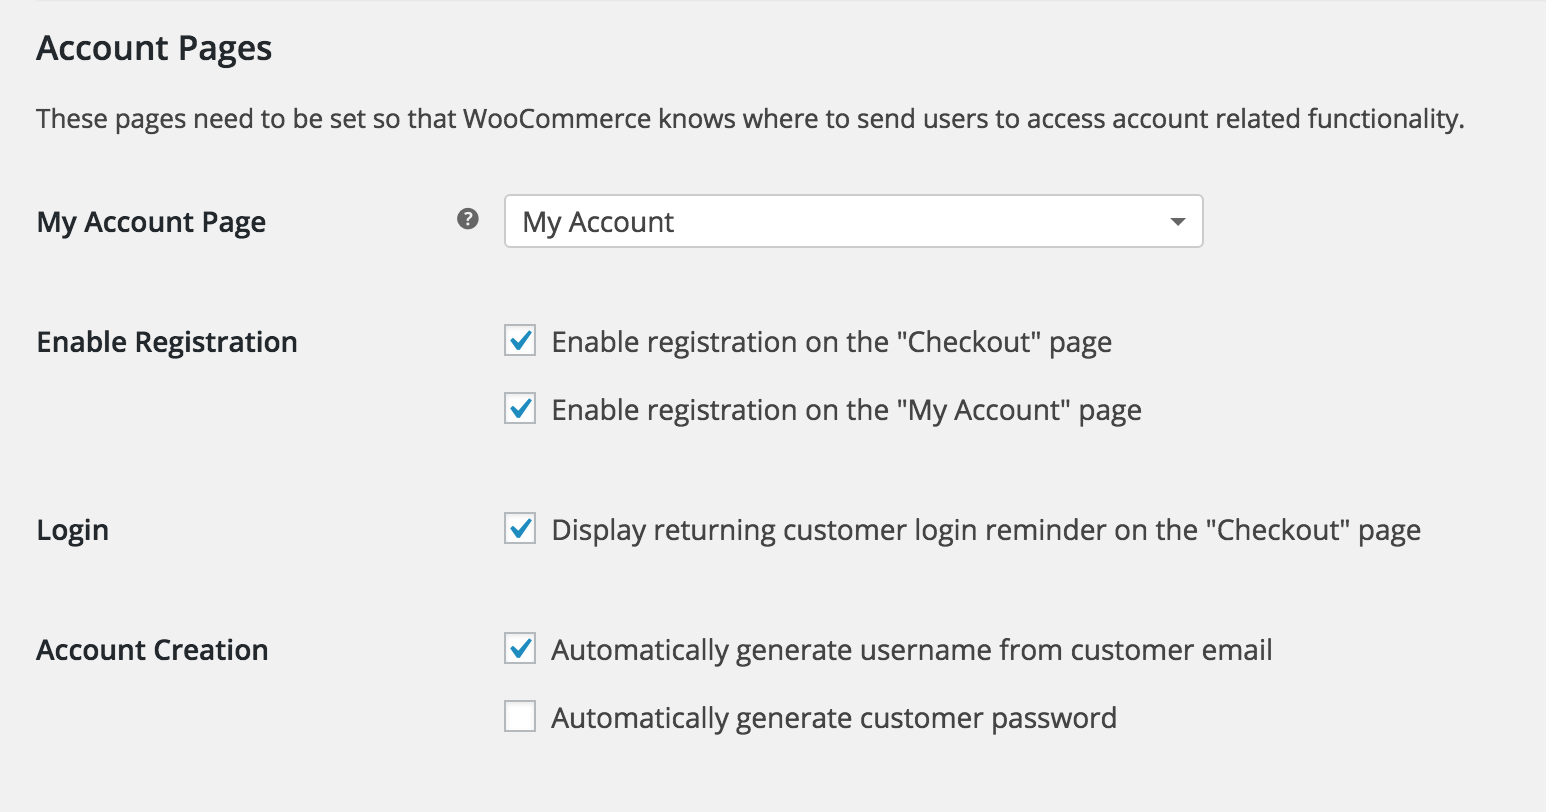 Shop customer account create/downloader - Account Registration